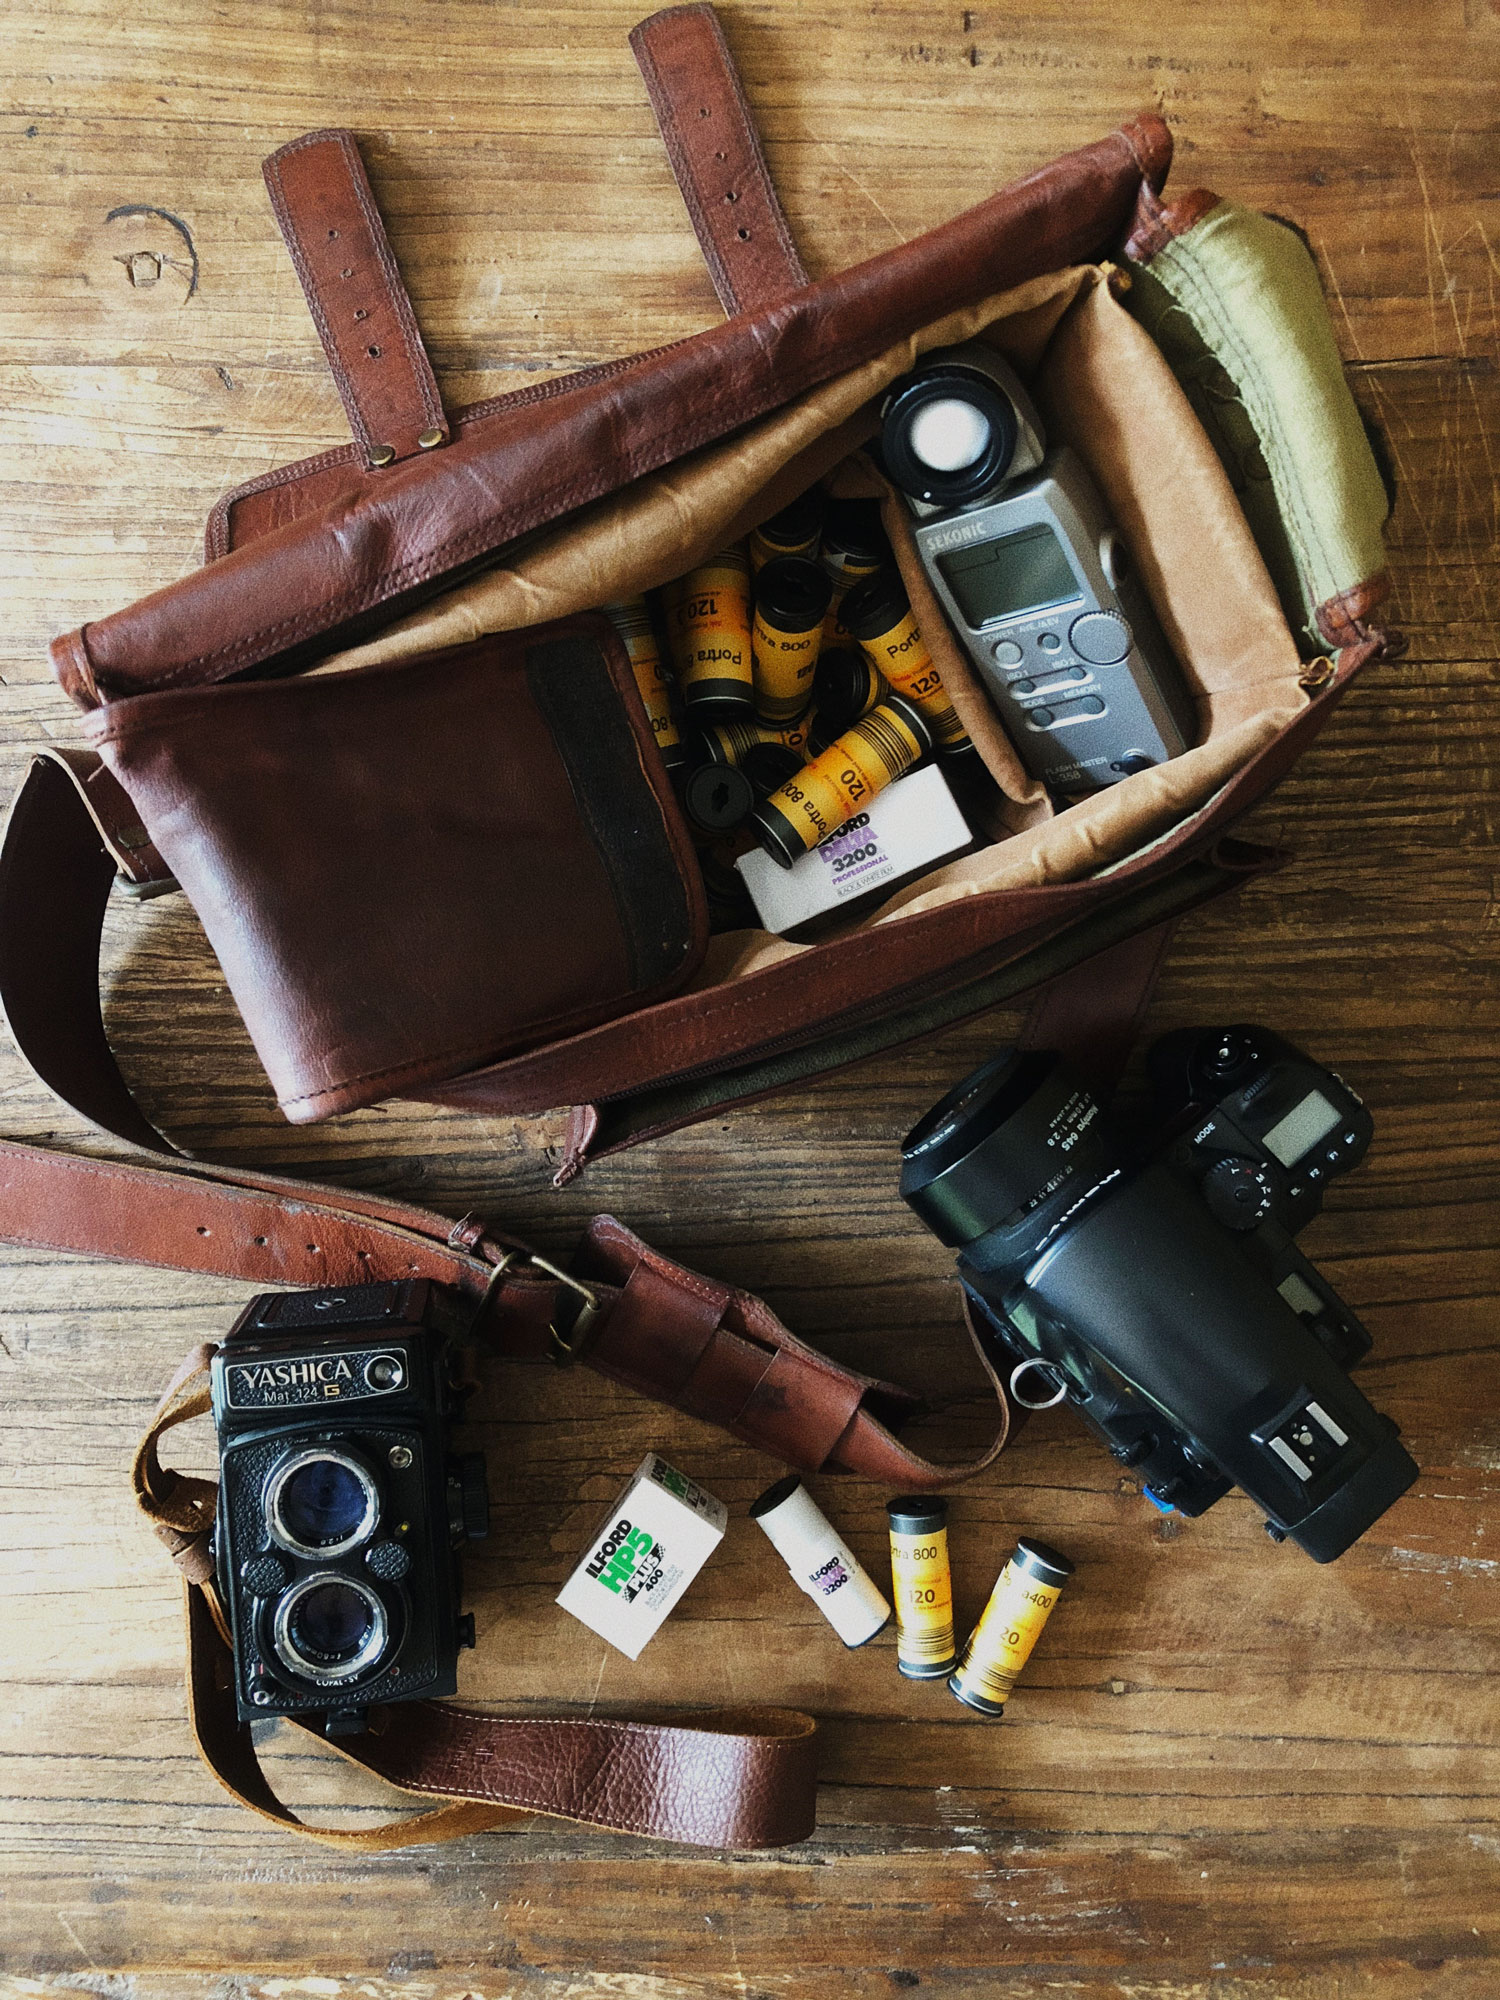 Open Camera Bag, Cameras, and Rolls of Film